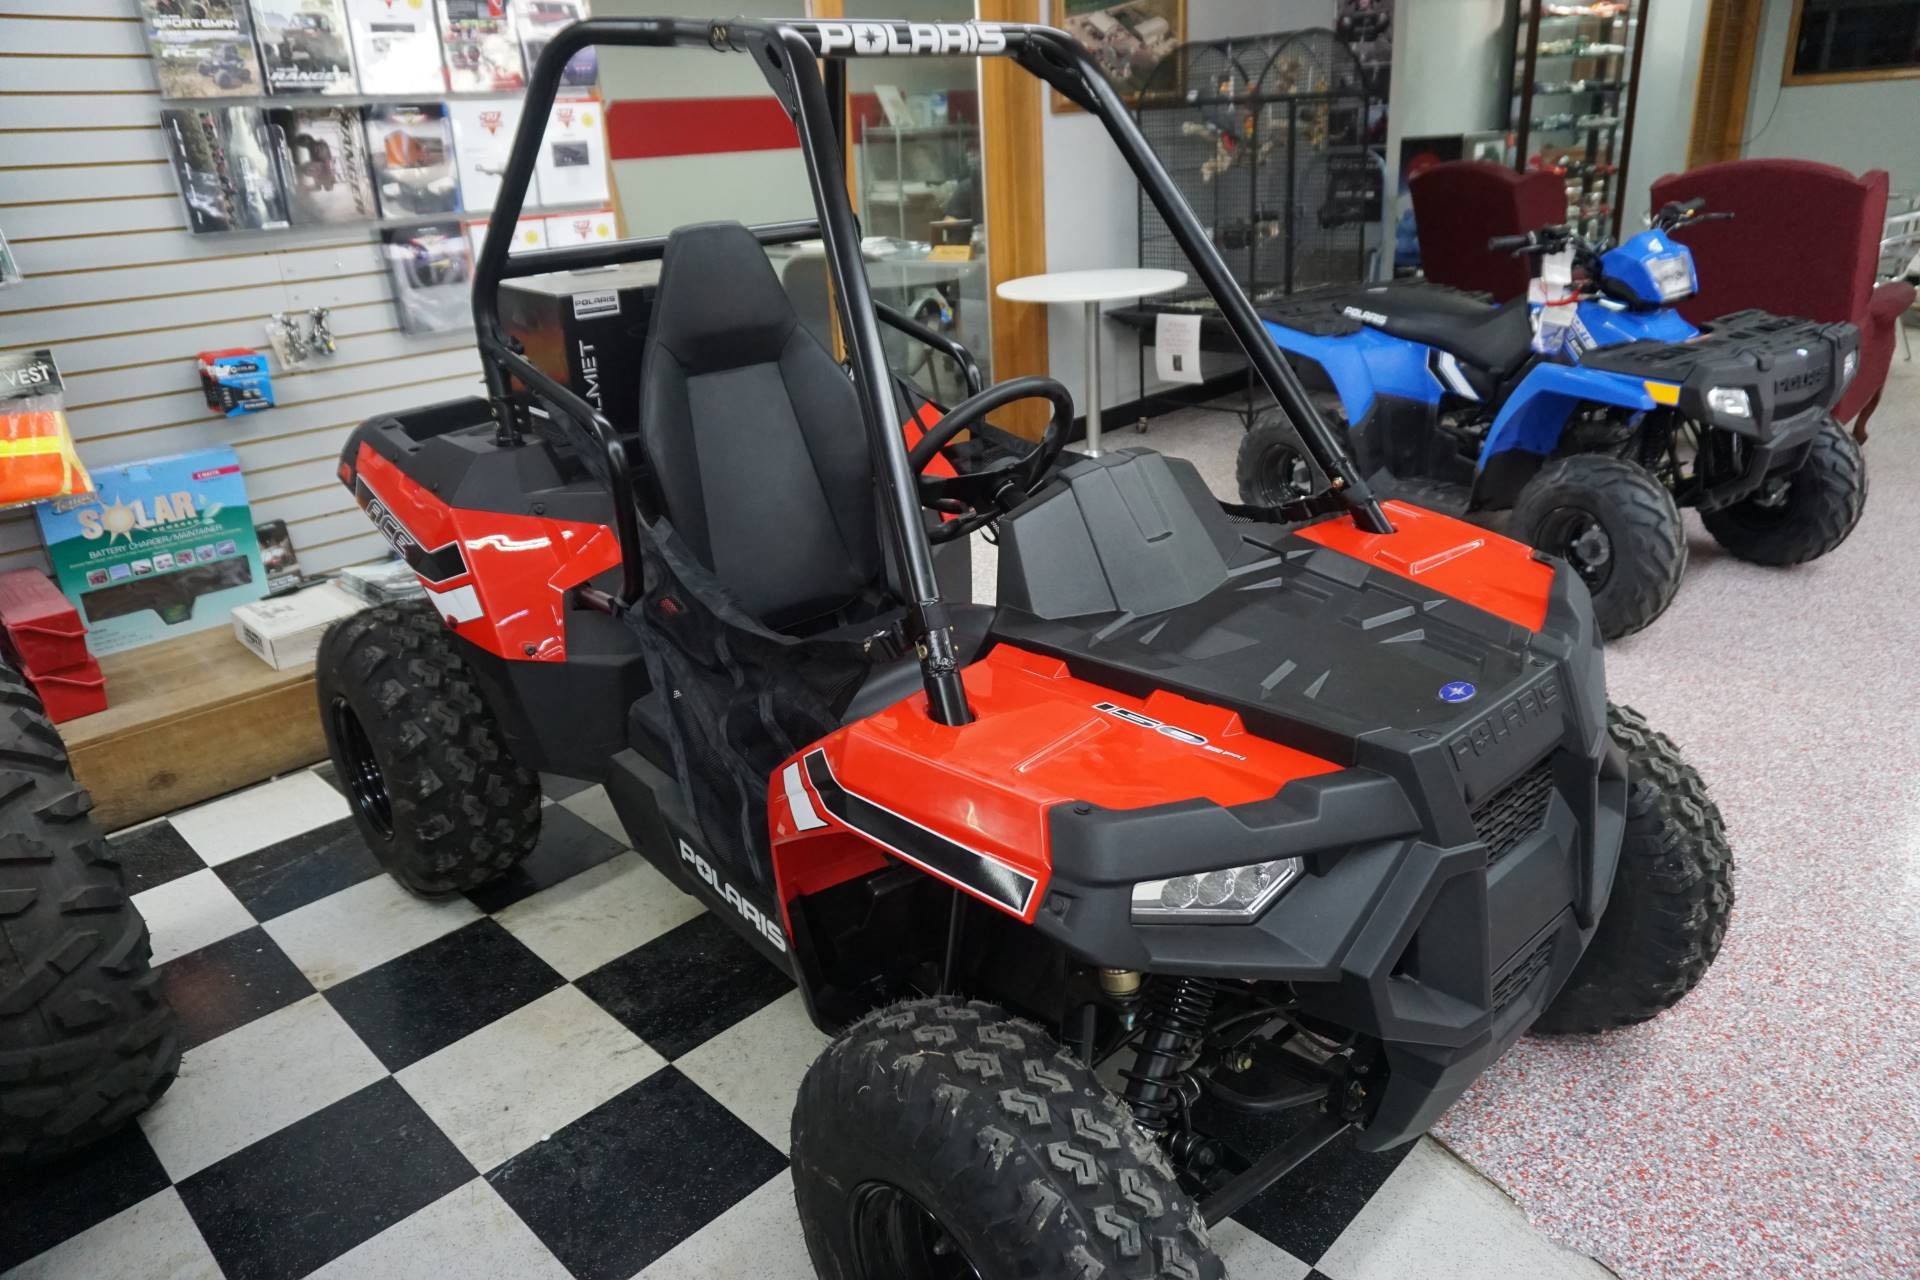 2017 Polaris Ace 150 EFI for sale 6976